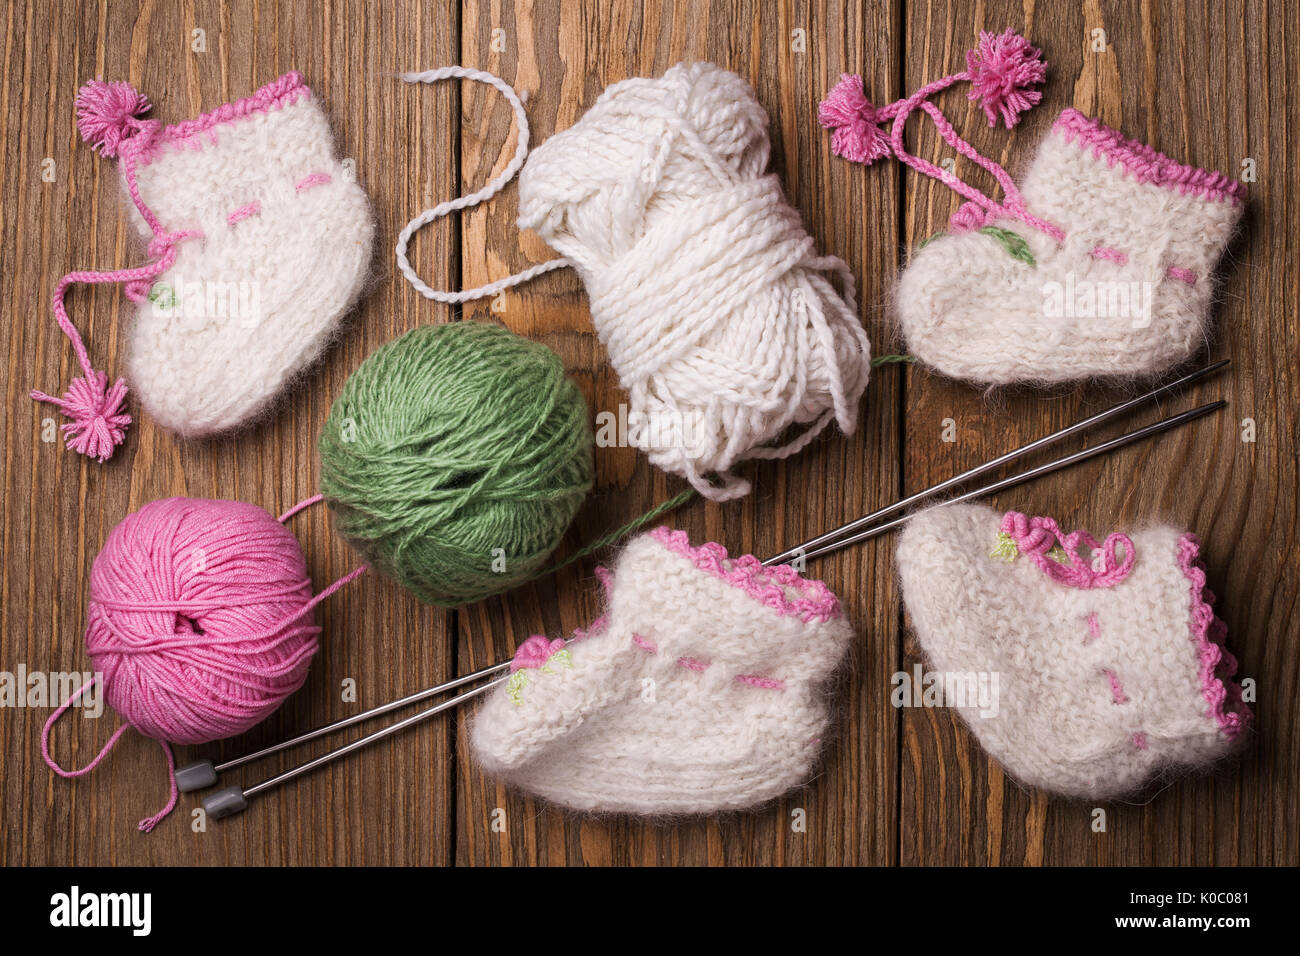 Baby booties with their hands, top view - Stock Image